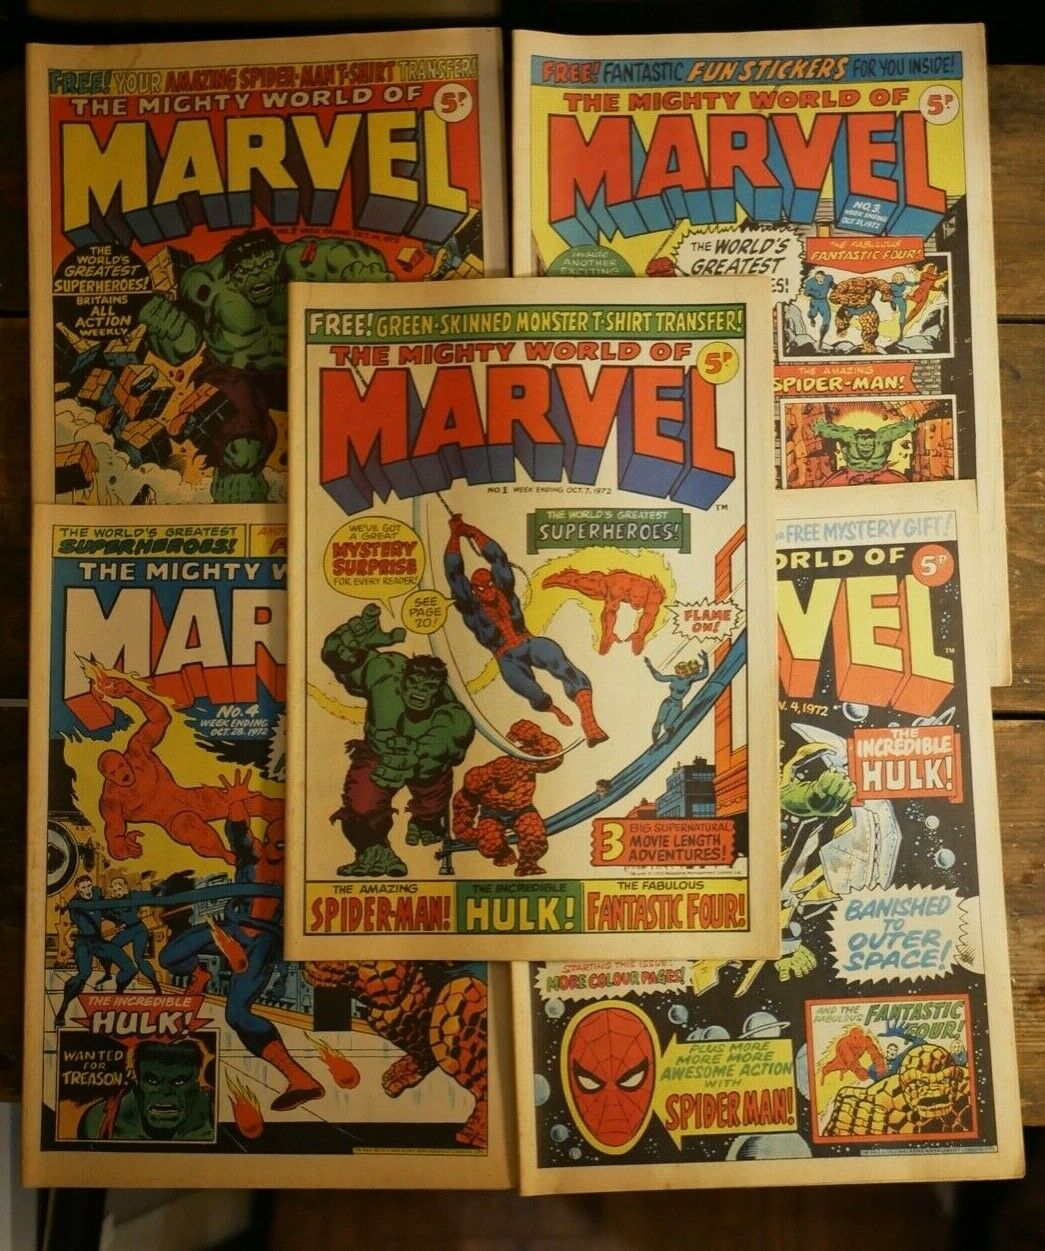 JOB LOT - BUNDLE 5 UK ISSUES OF THE MIGHTY WORLD OF MARVEL #1, 2, 3, 4 & 5 1972